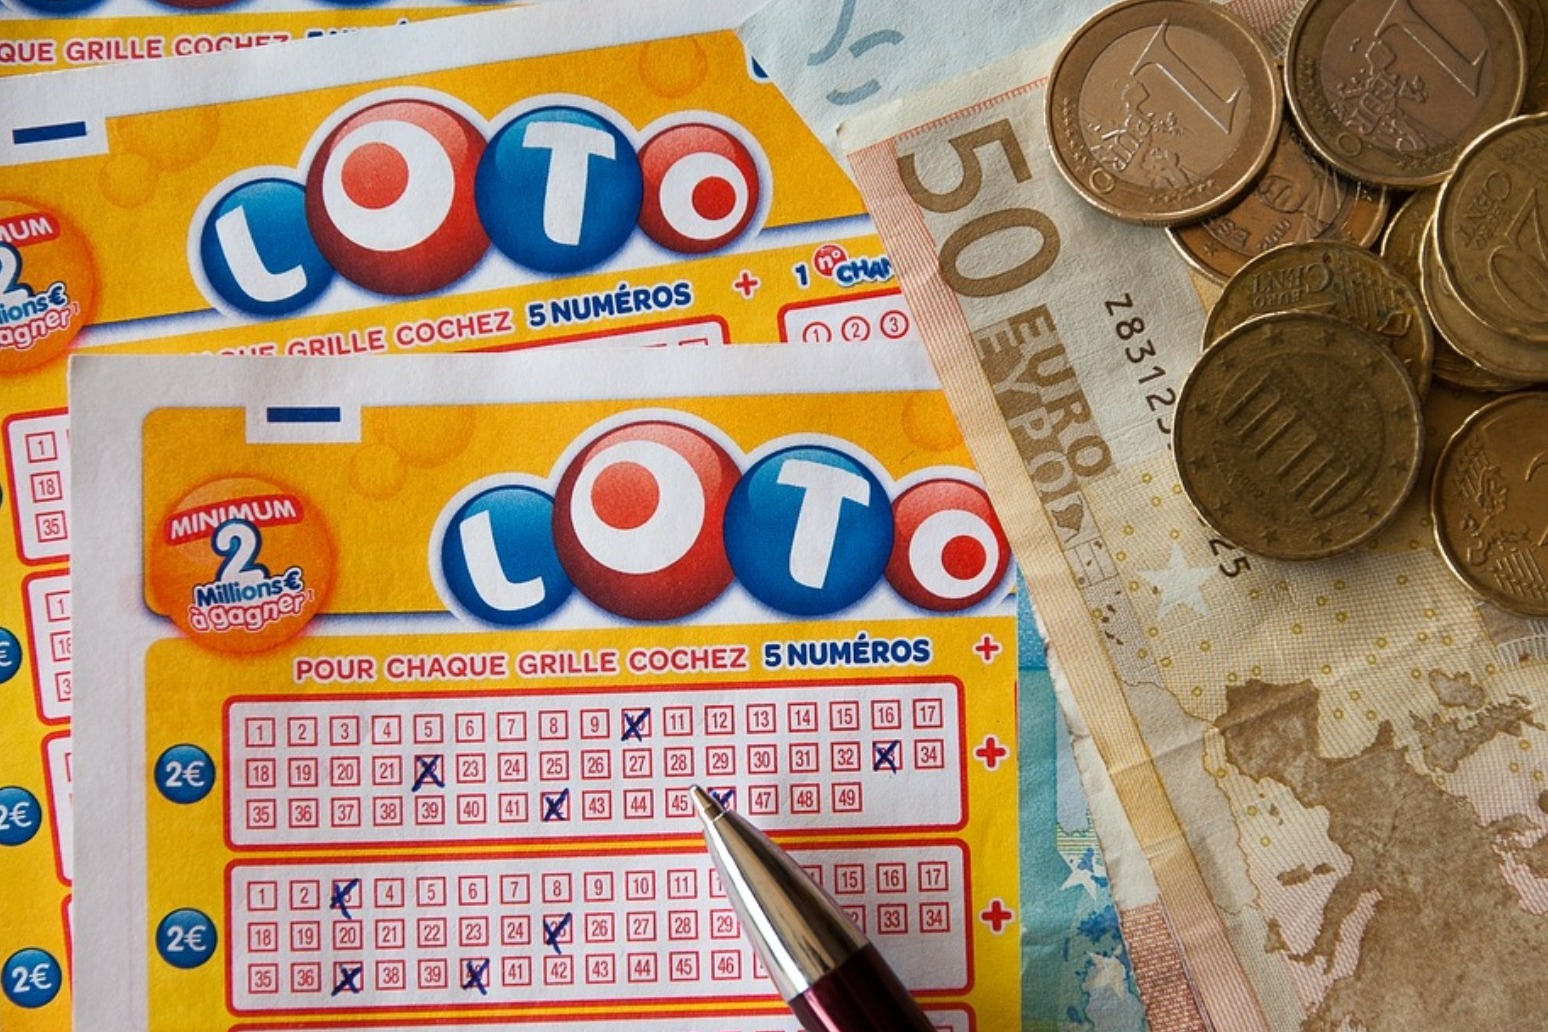 UK TICKET-HOLDER MAKES HISTORY WITH £170M EUROMILLIONS WIN